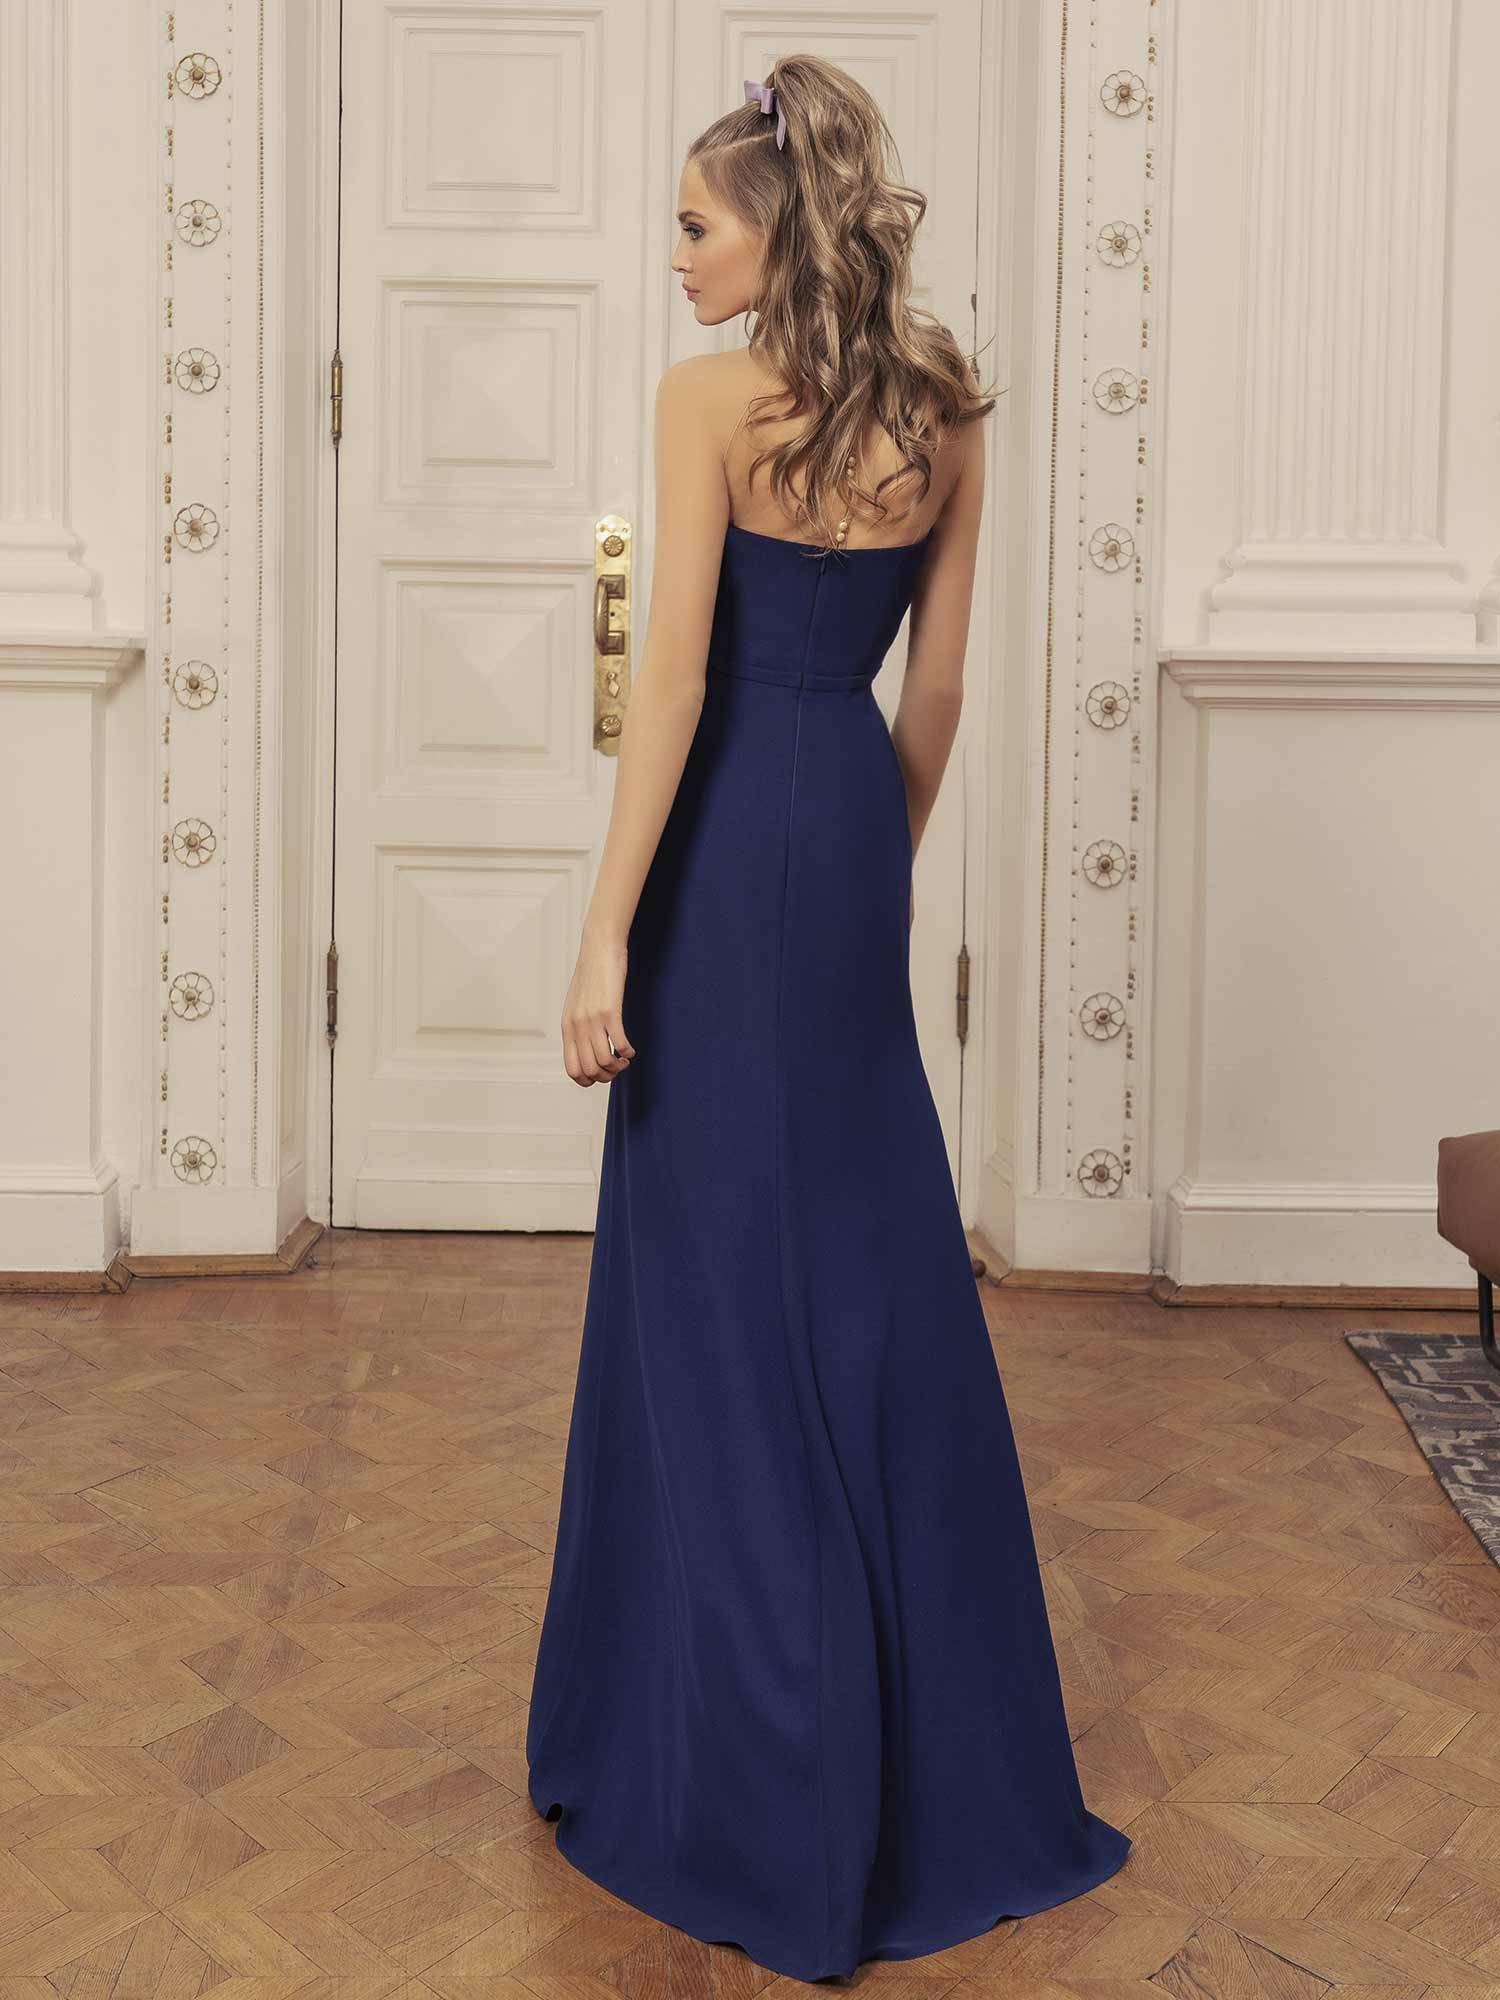 Style #525, maxi dress with deep v neckline and slit up leg, available in pink, red, blue, ivory